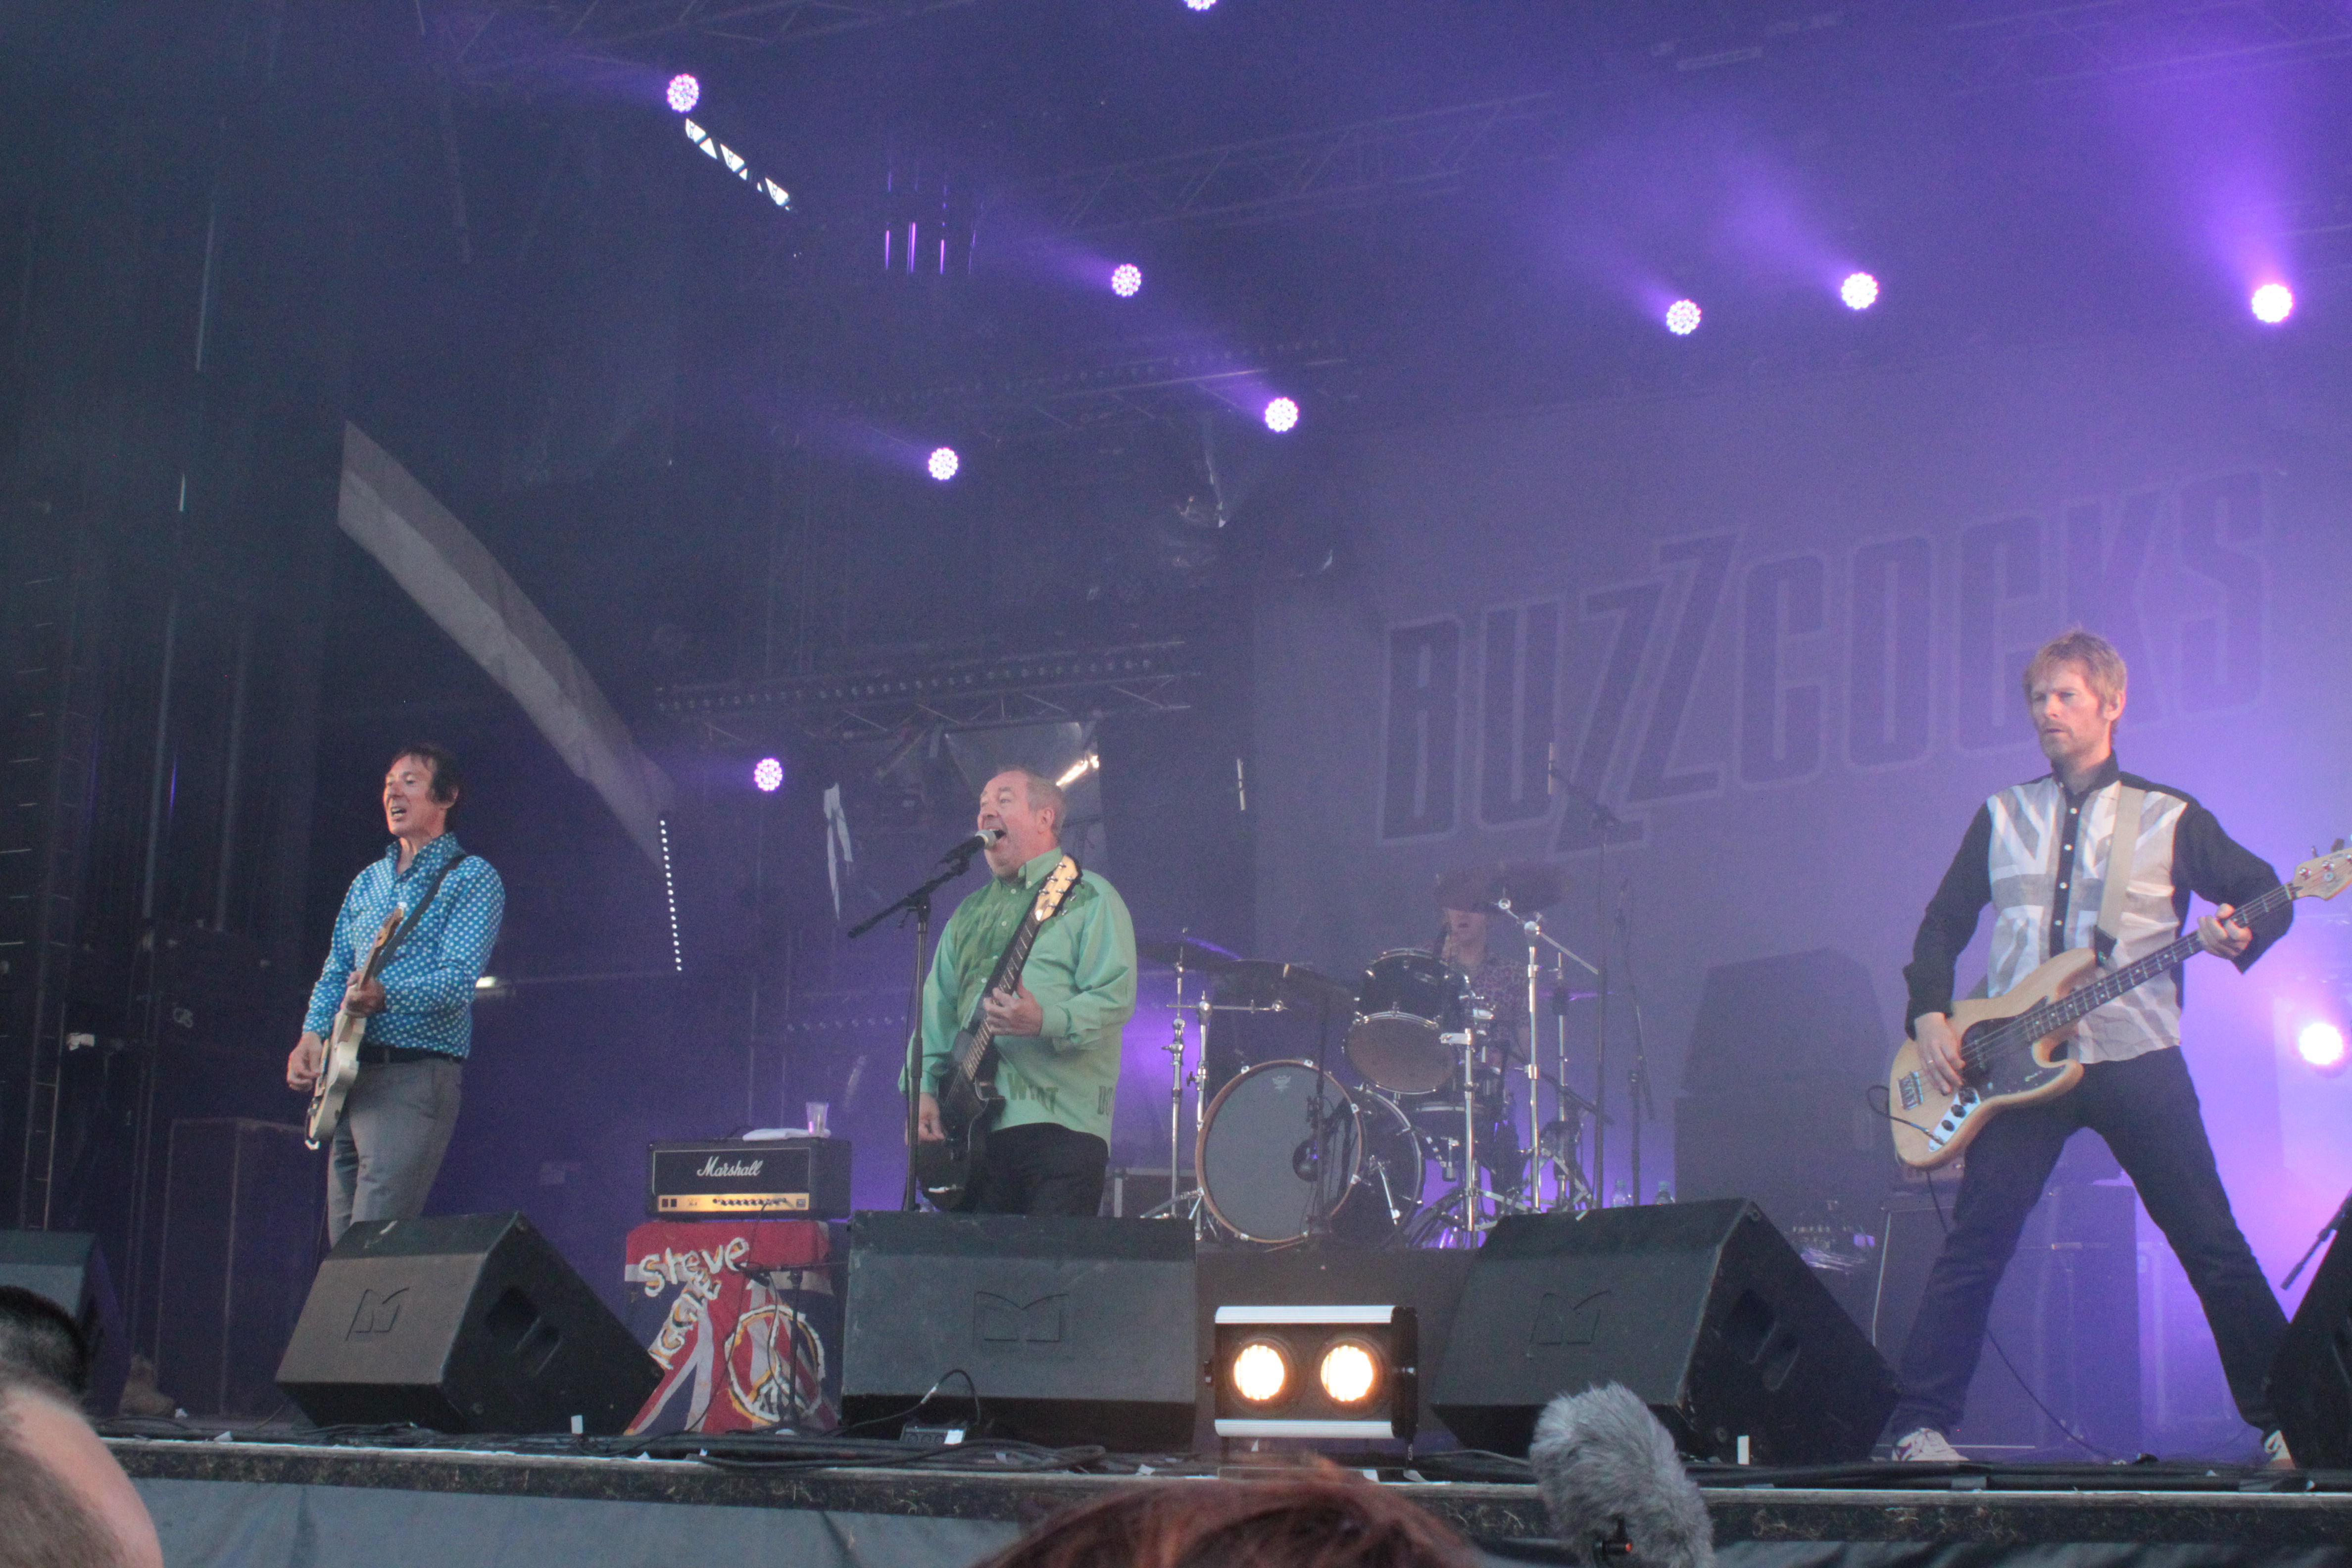 Left to right: Steve Diggle, Pete Shelley, Danny Farrant and Chris Remington, performing live at Hellfest 2013.